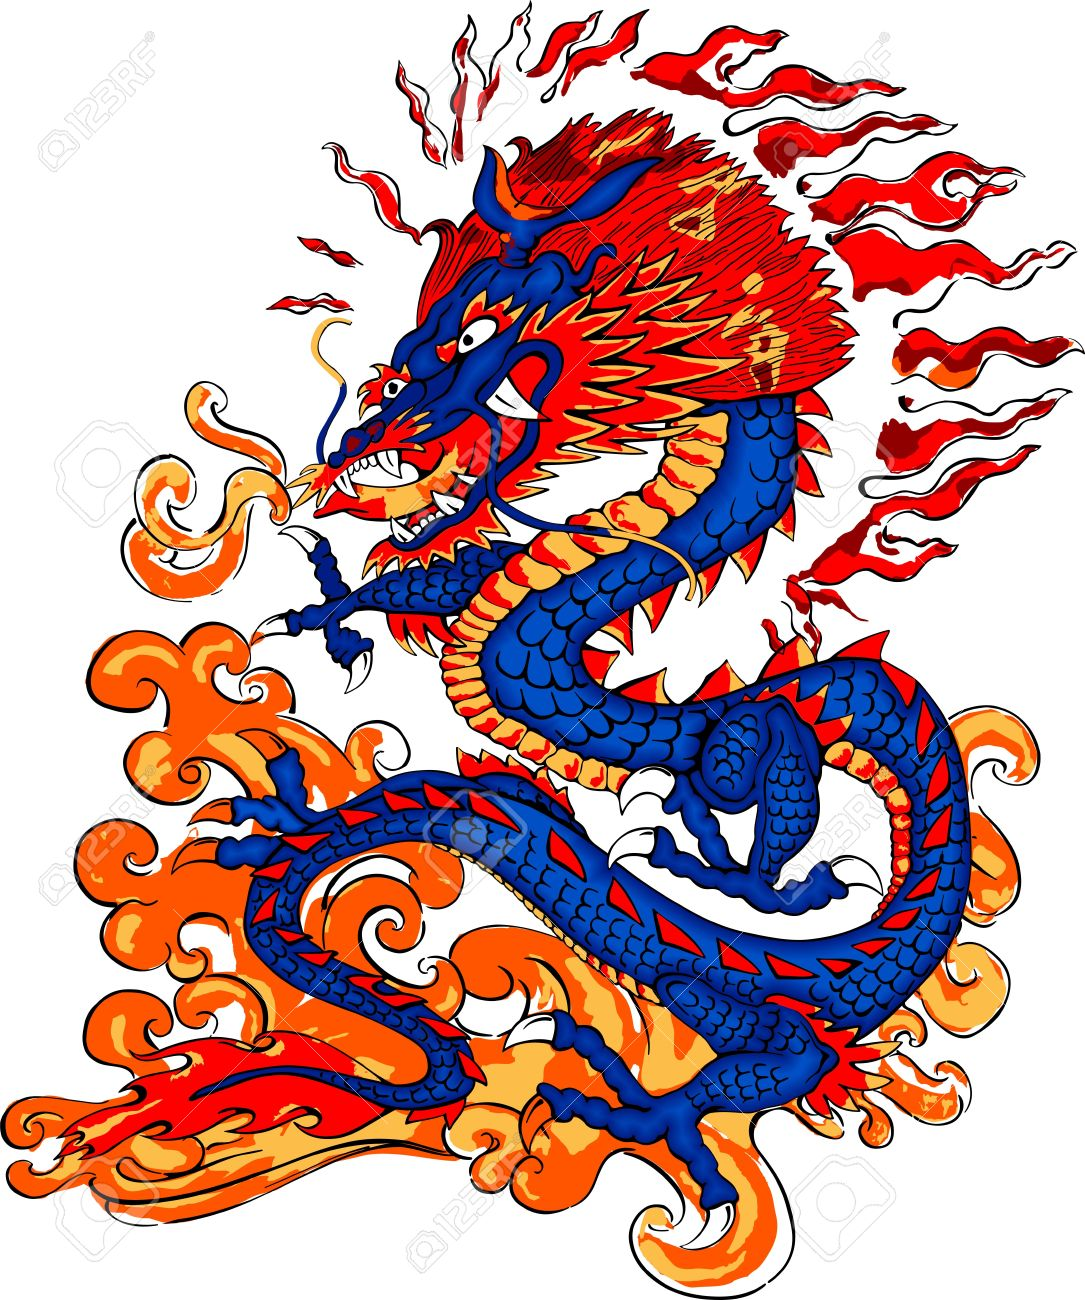 1085x1300 Drawn Chinese Dragon Fire Breathing